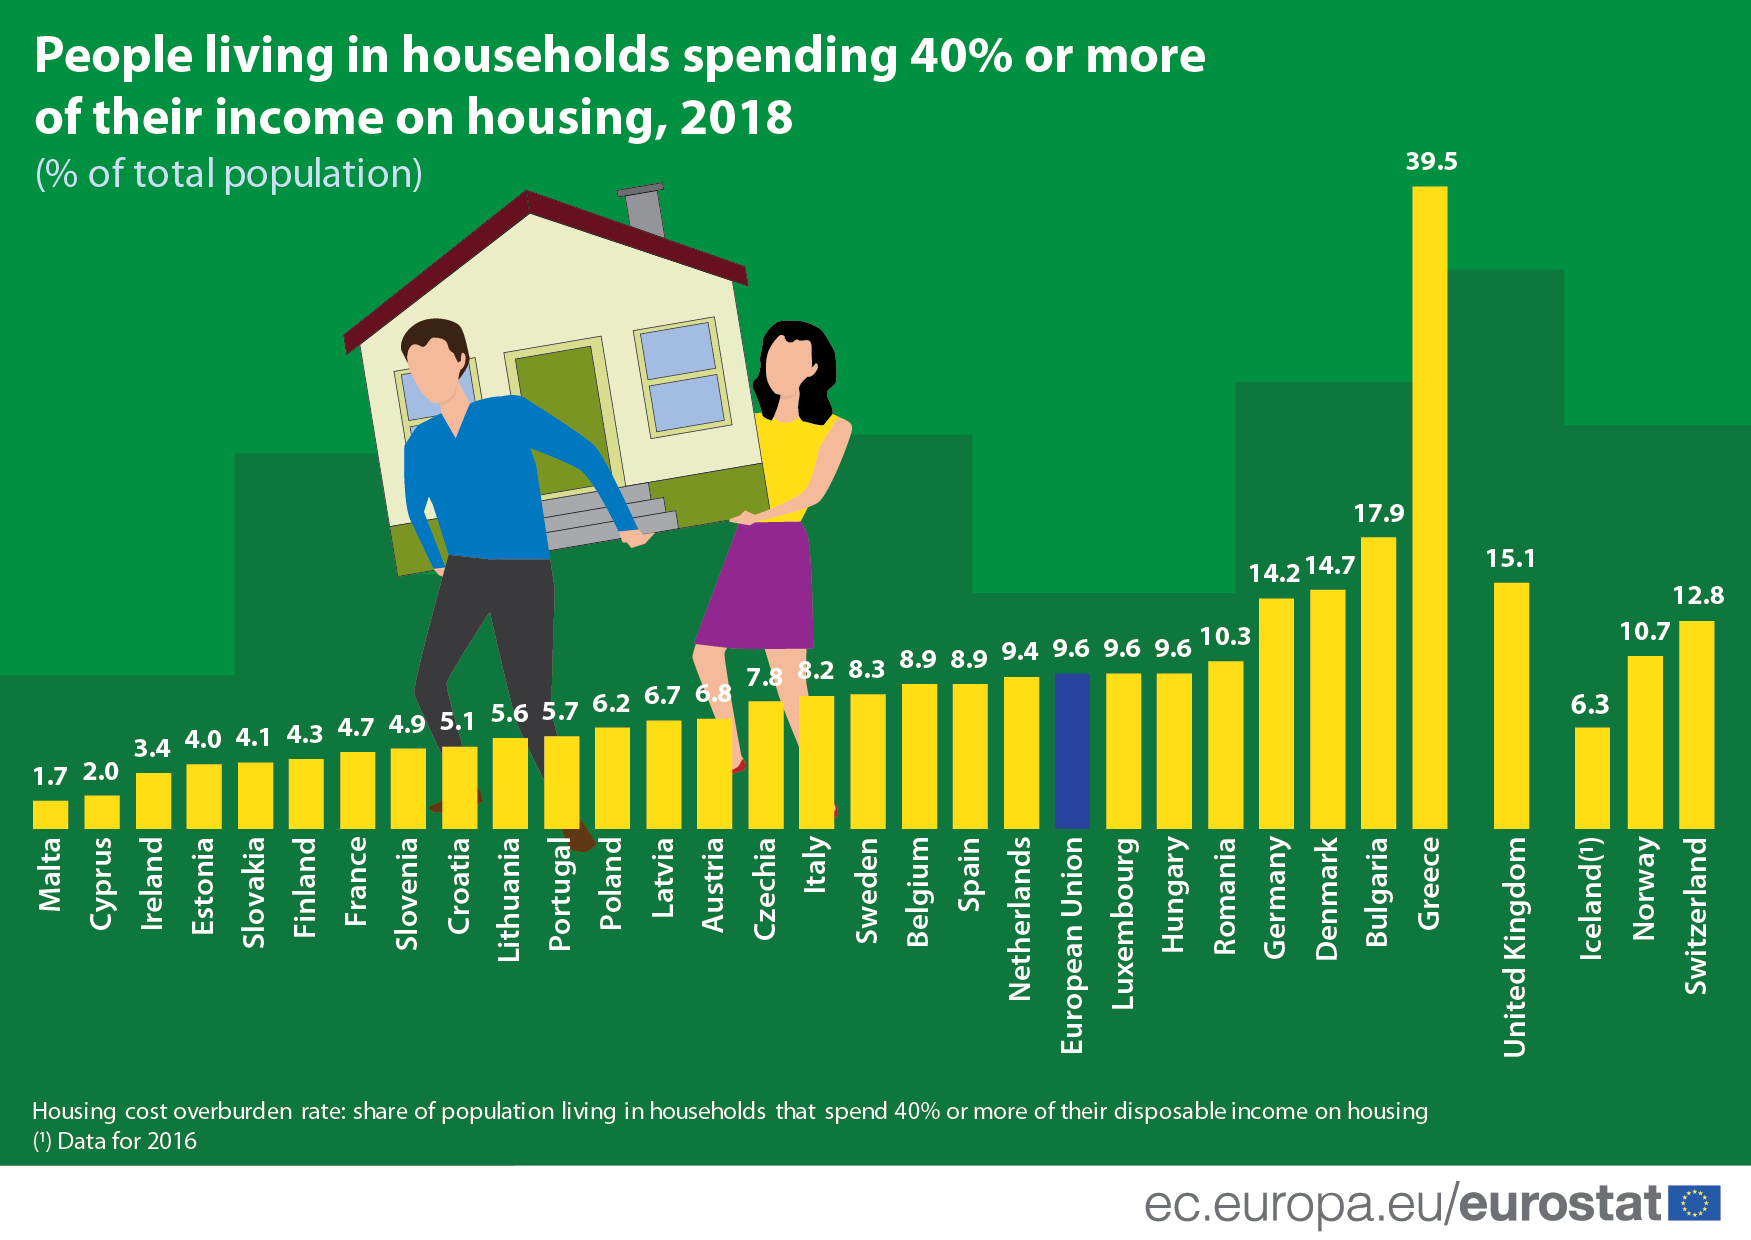 Infographic: People living in households spending 40% or more of their income on housing, 2018